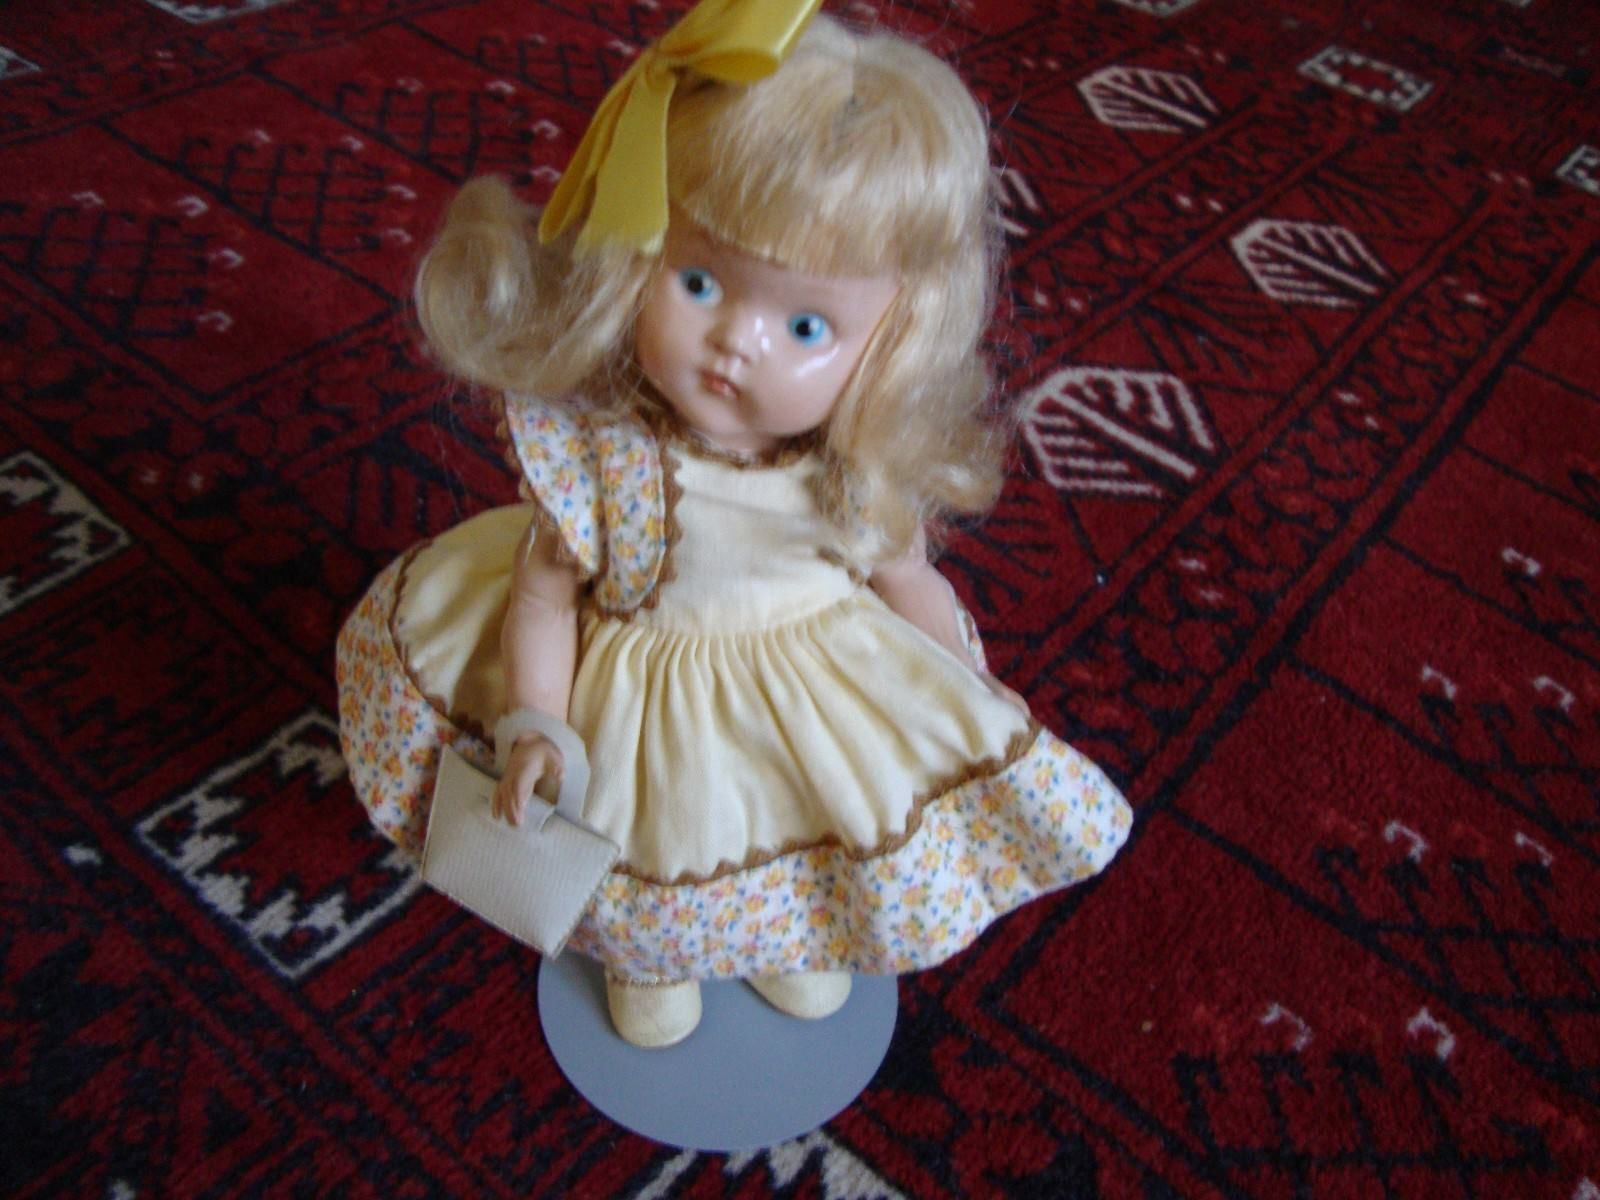 Vogue painted eye ginny bonnie hair bow and dolls